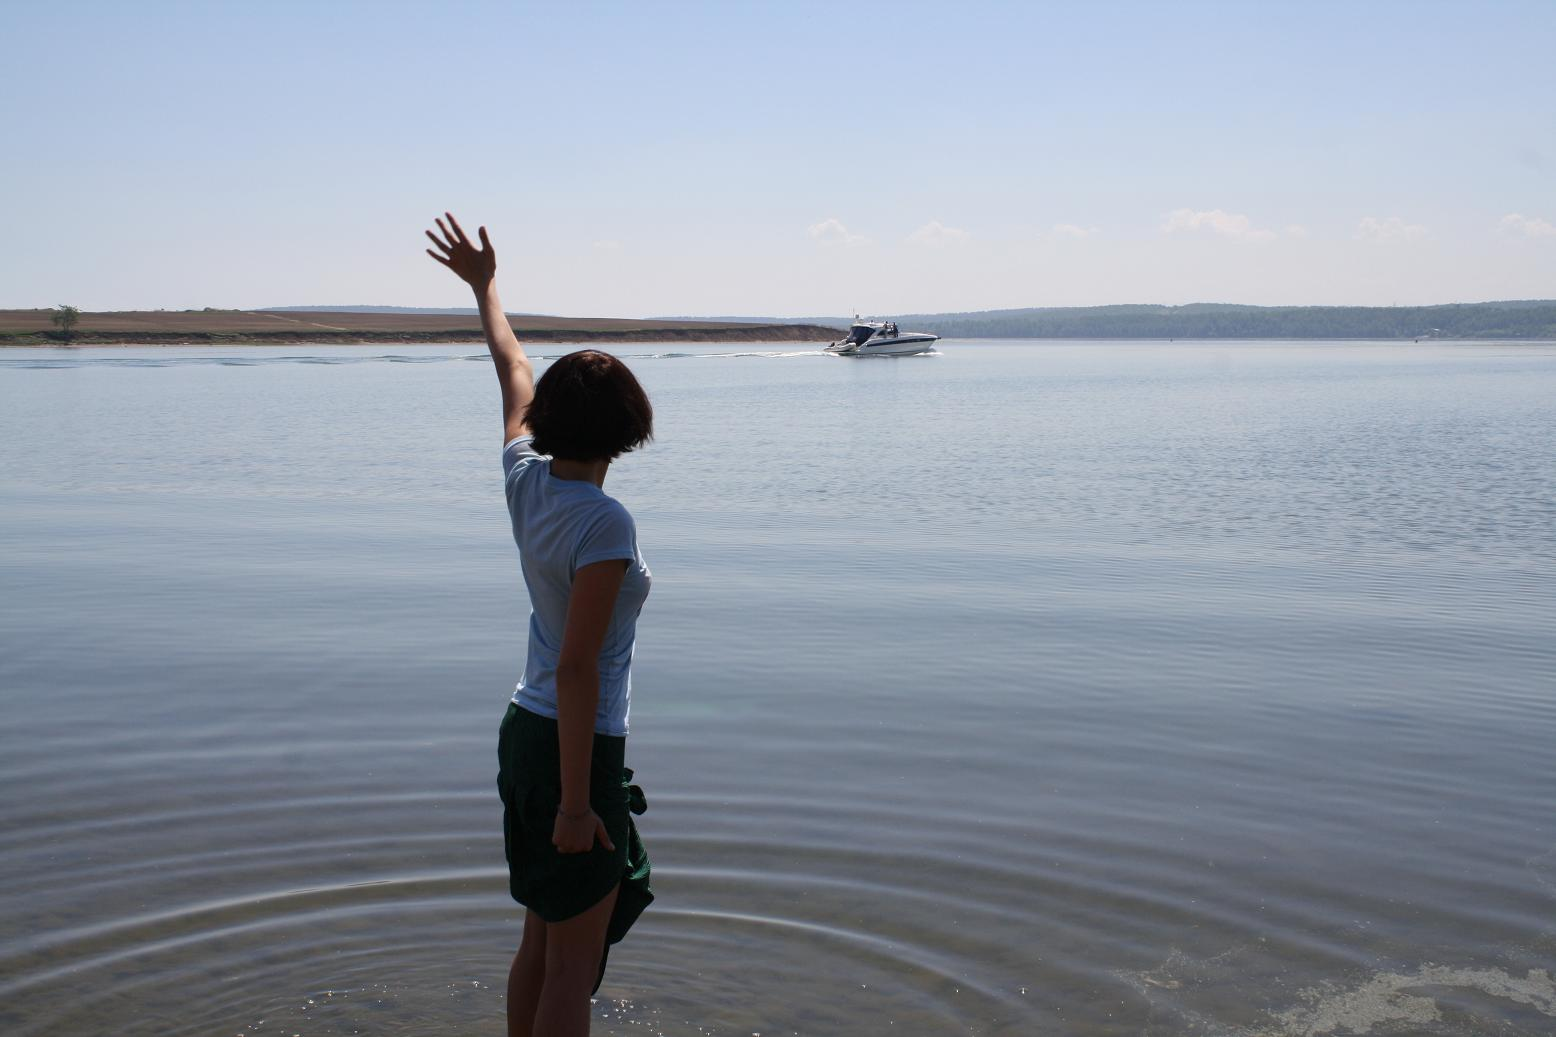 me trying to hitchhike a boat on Angara River